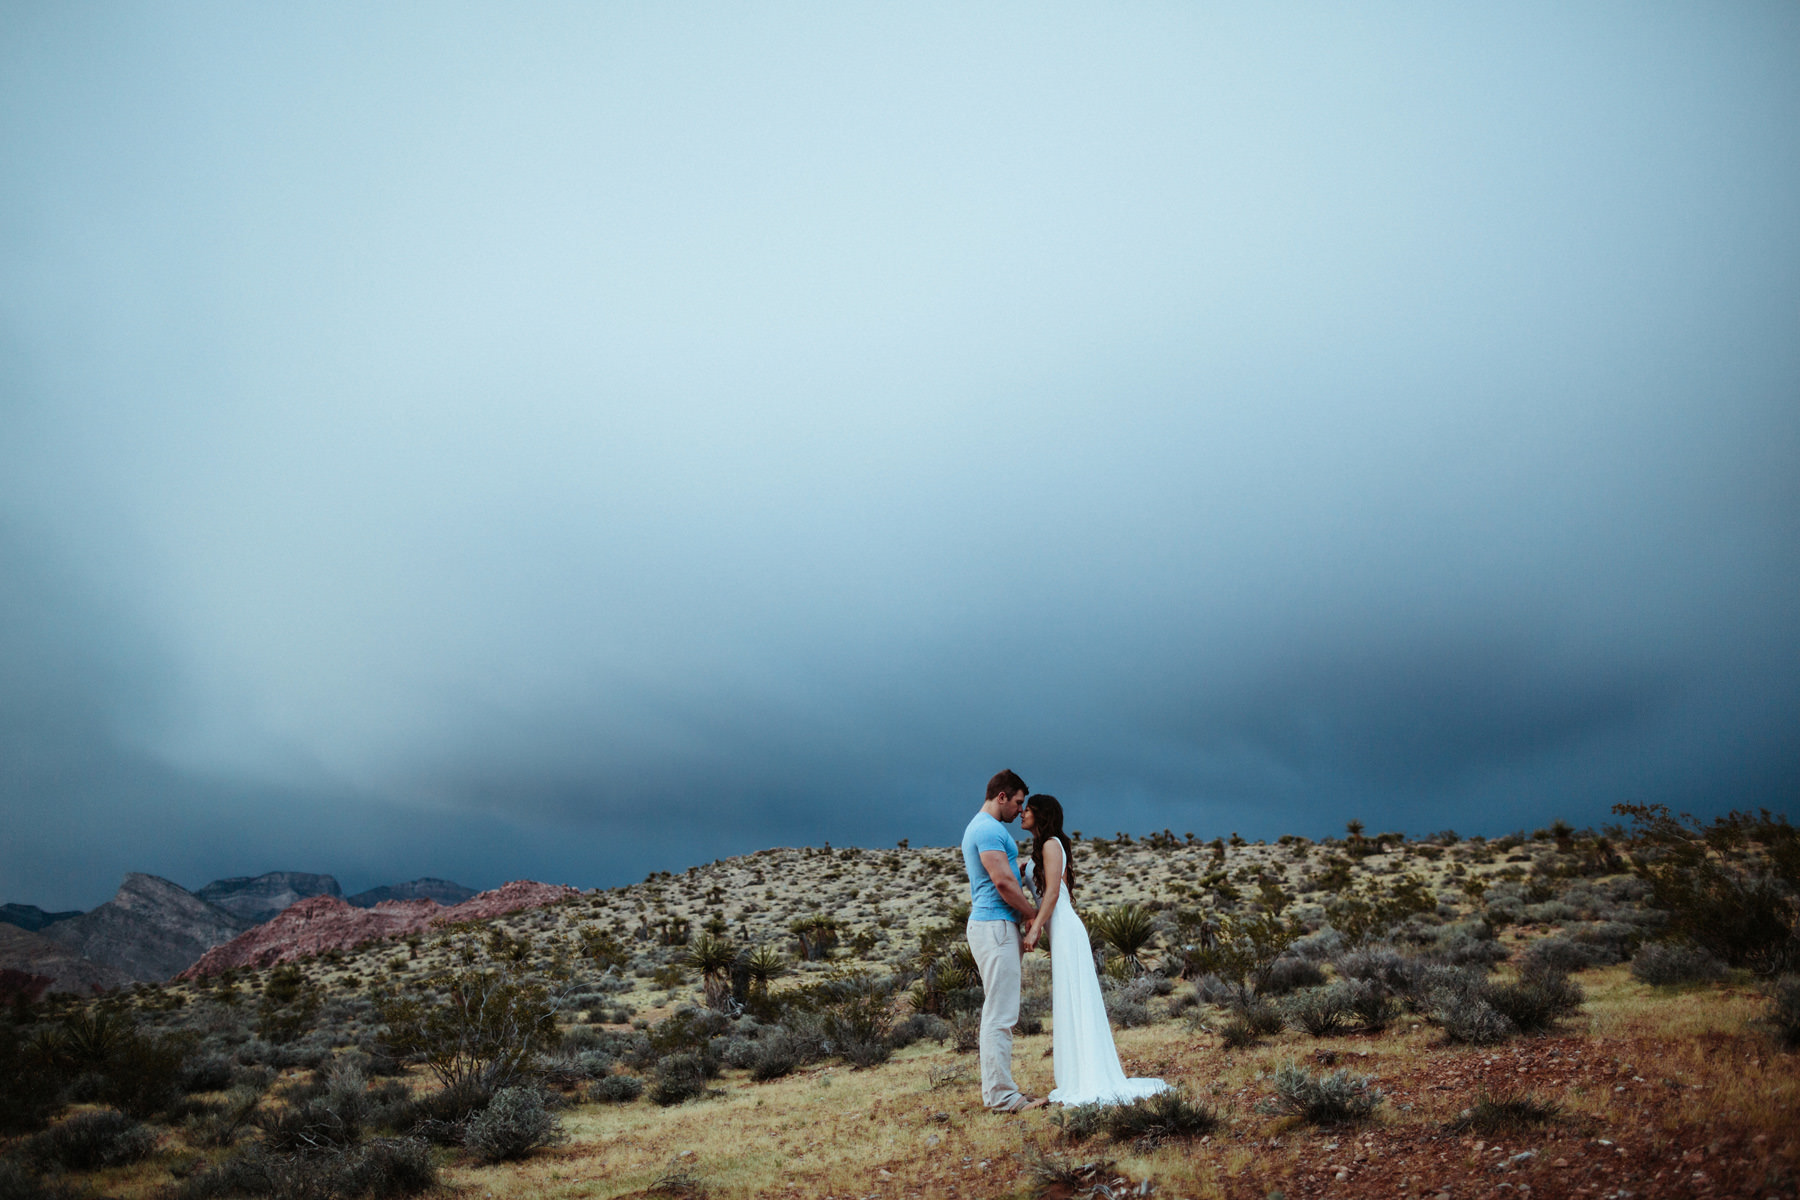 186_Red Rock Canyon Desert Engagement Session Las Vegas, Nevada_Kindling Wedding Photography.JPG